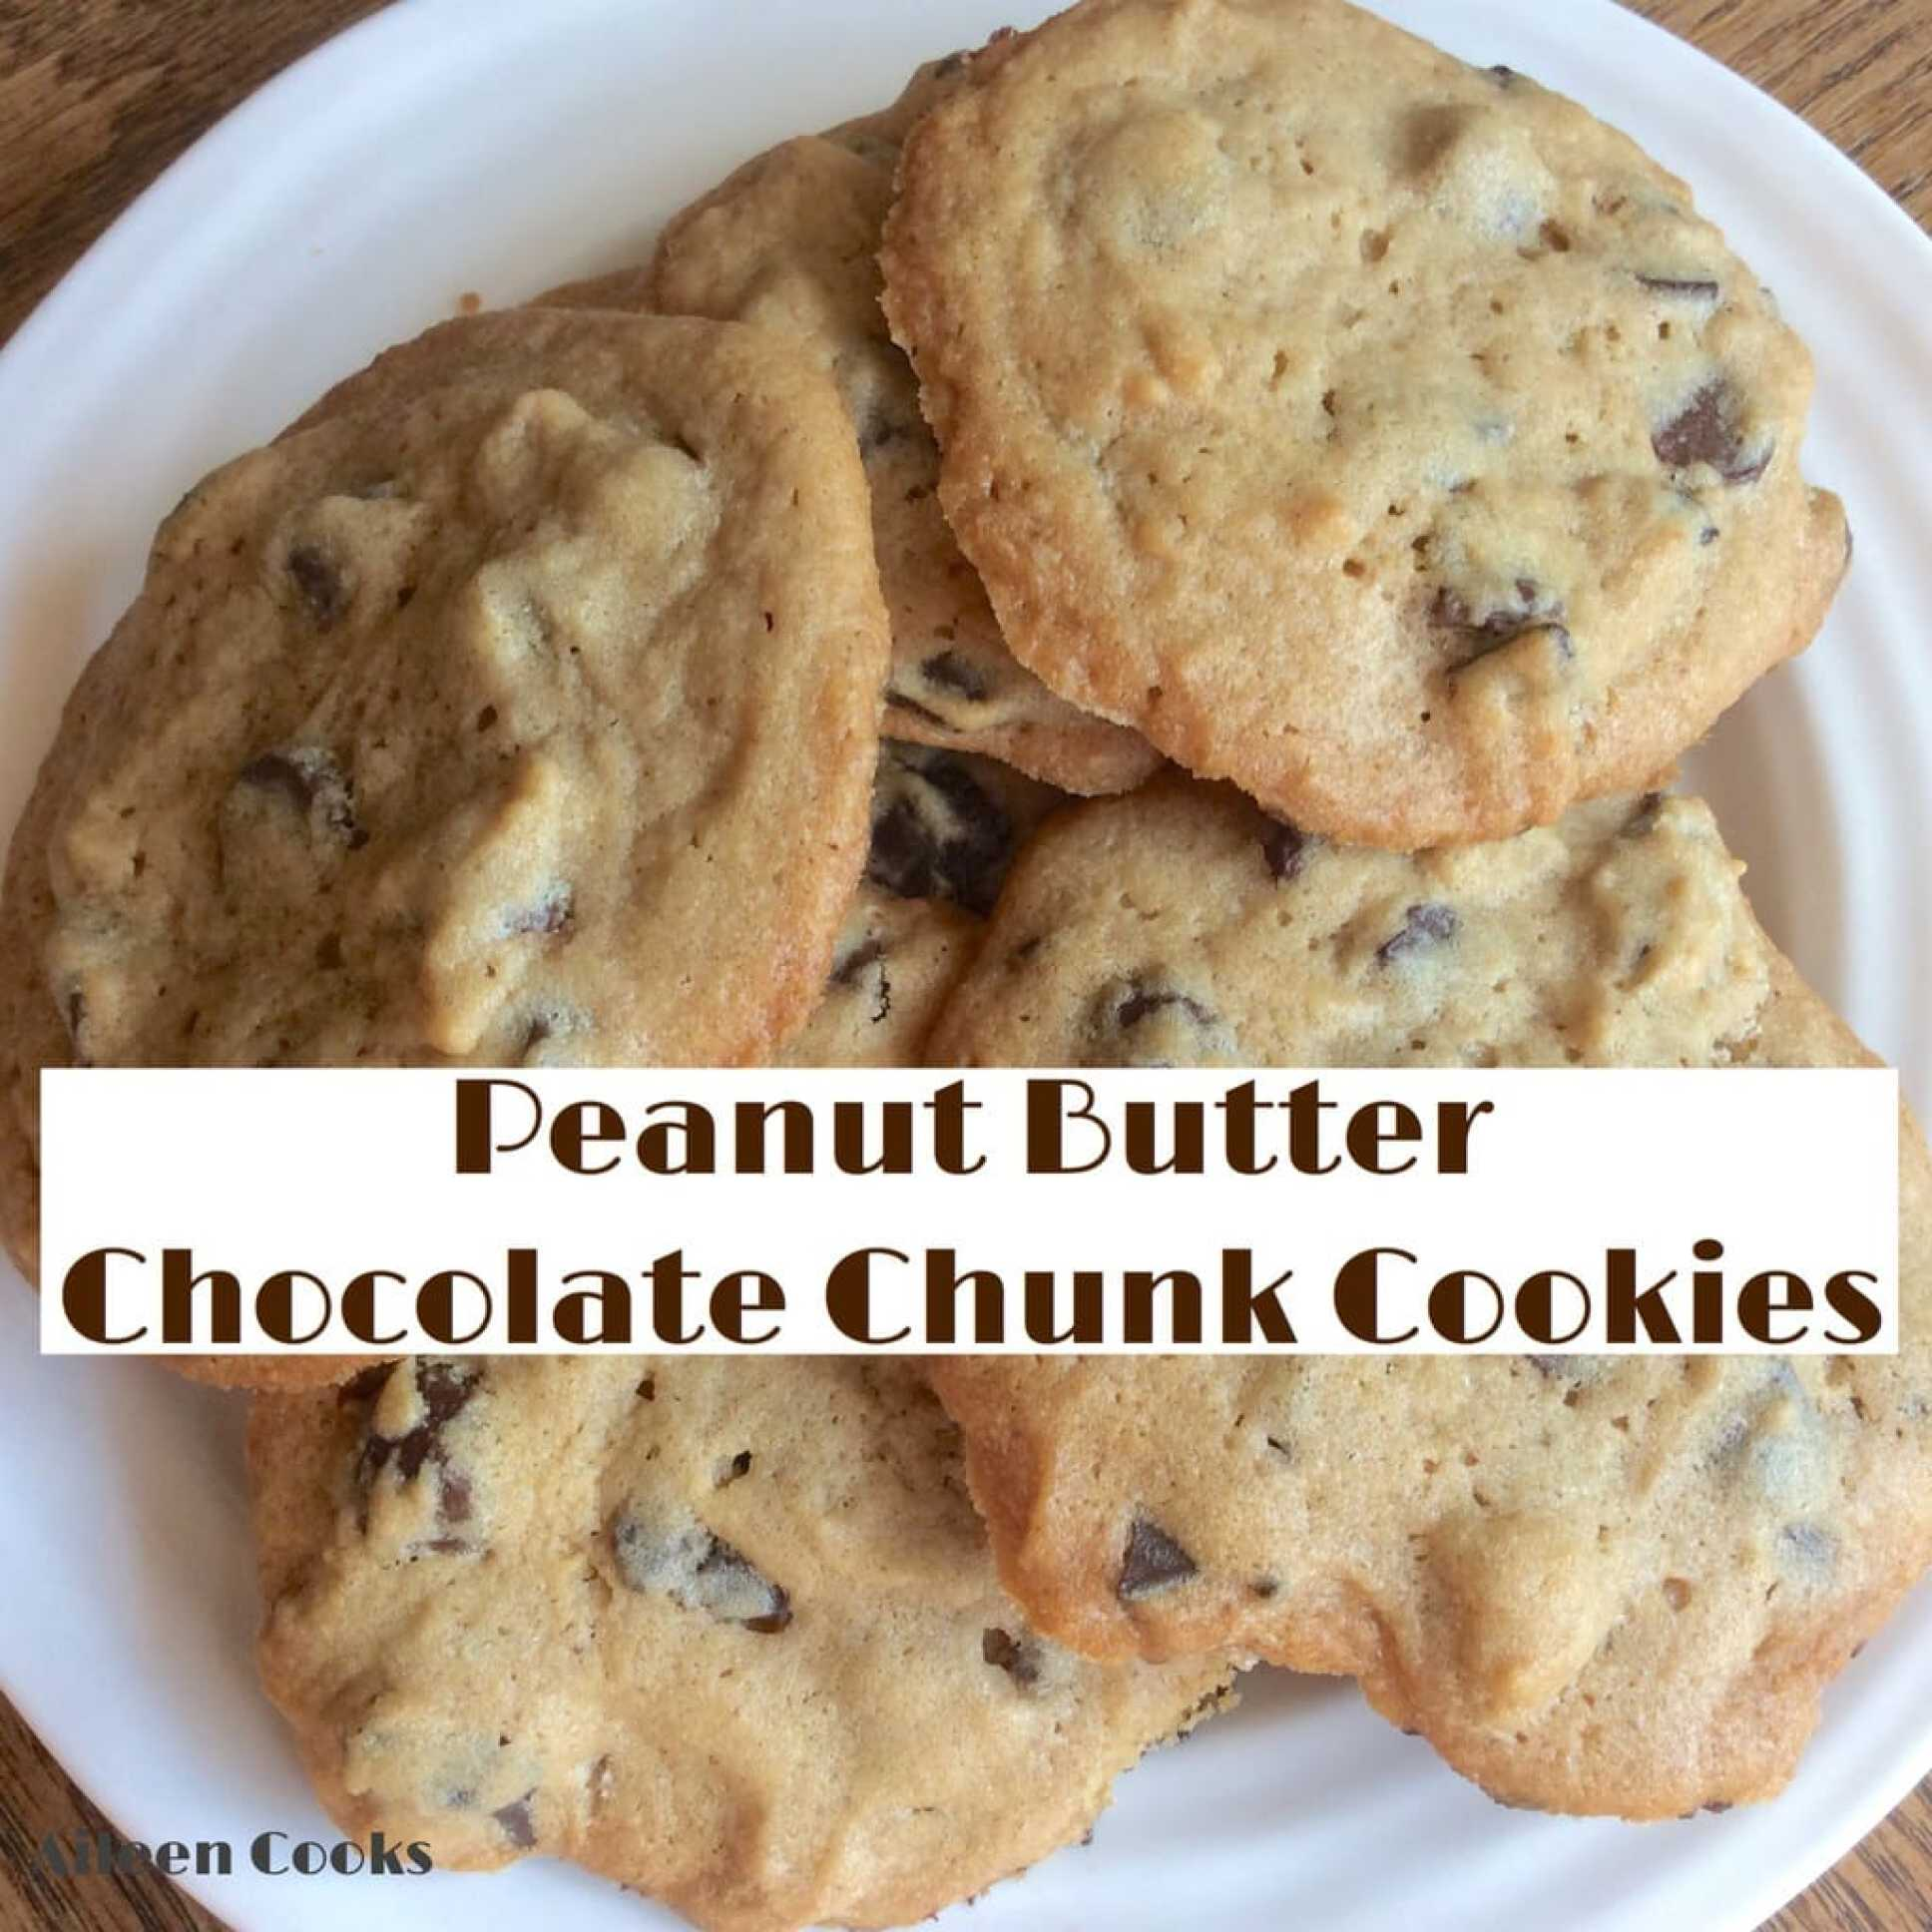 Peanut Butter Chocolate Chunk Cookies   Aileen Cooks